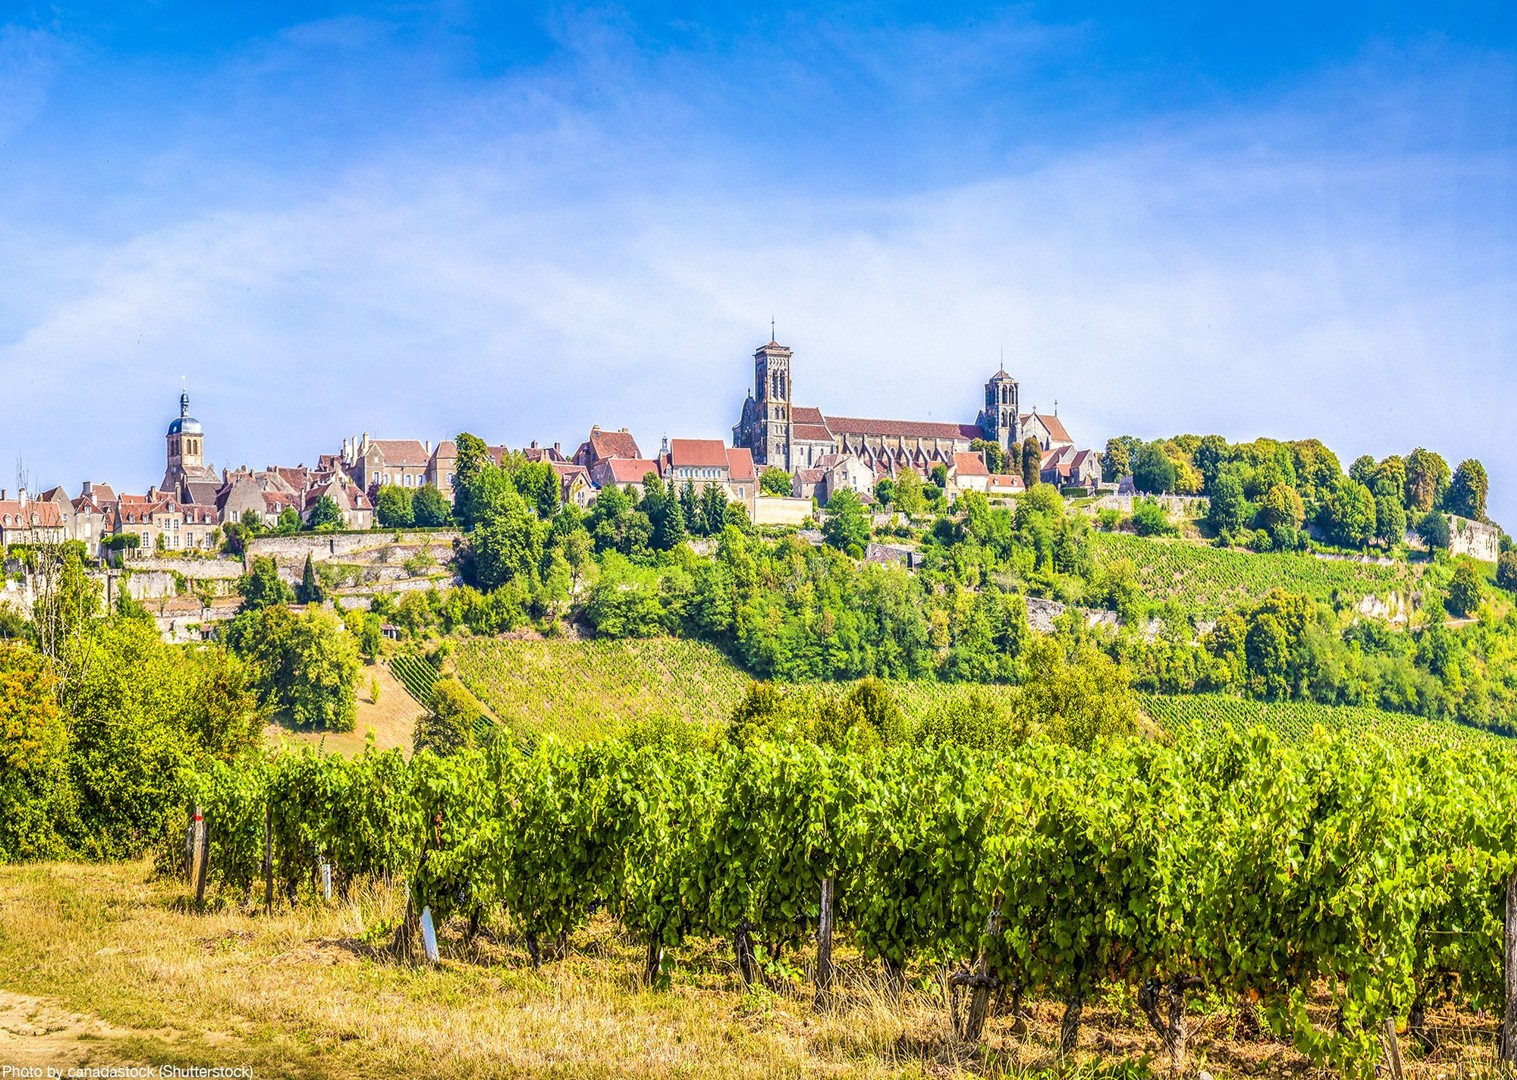 bourgogne-franche-comté-vineyards-wine-burgundy-cycle-tour.jpg - France - Burgundy - Caves and Canals - Self-Guided Leisure Cycling Holiday - Leisure Cycling